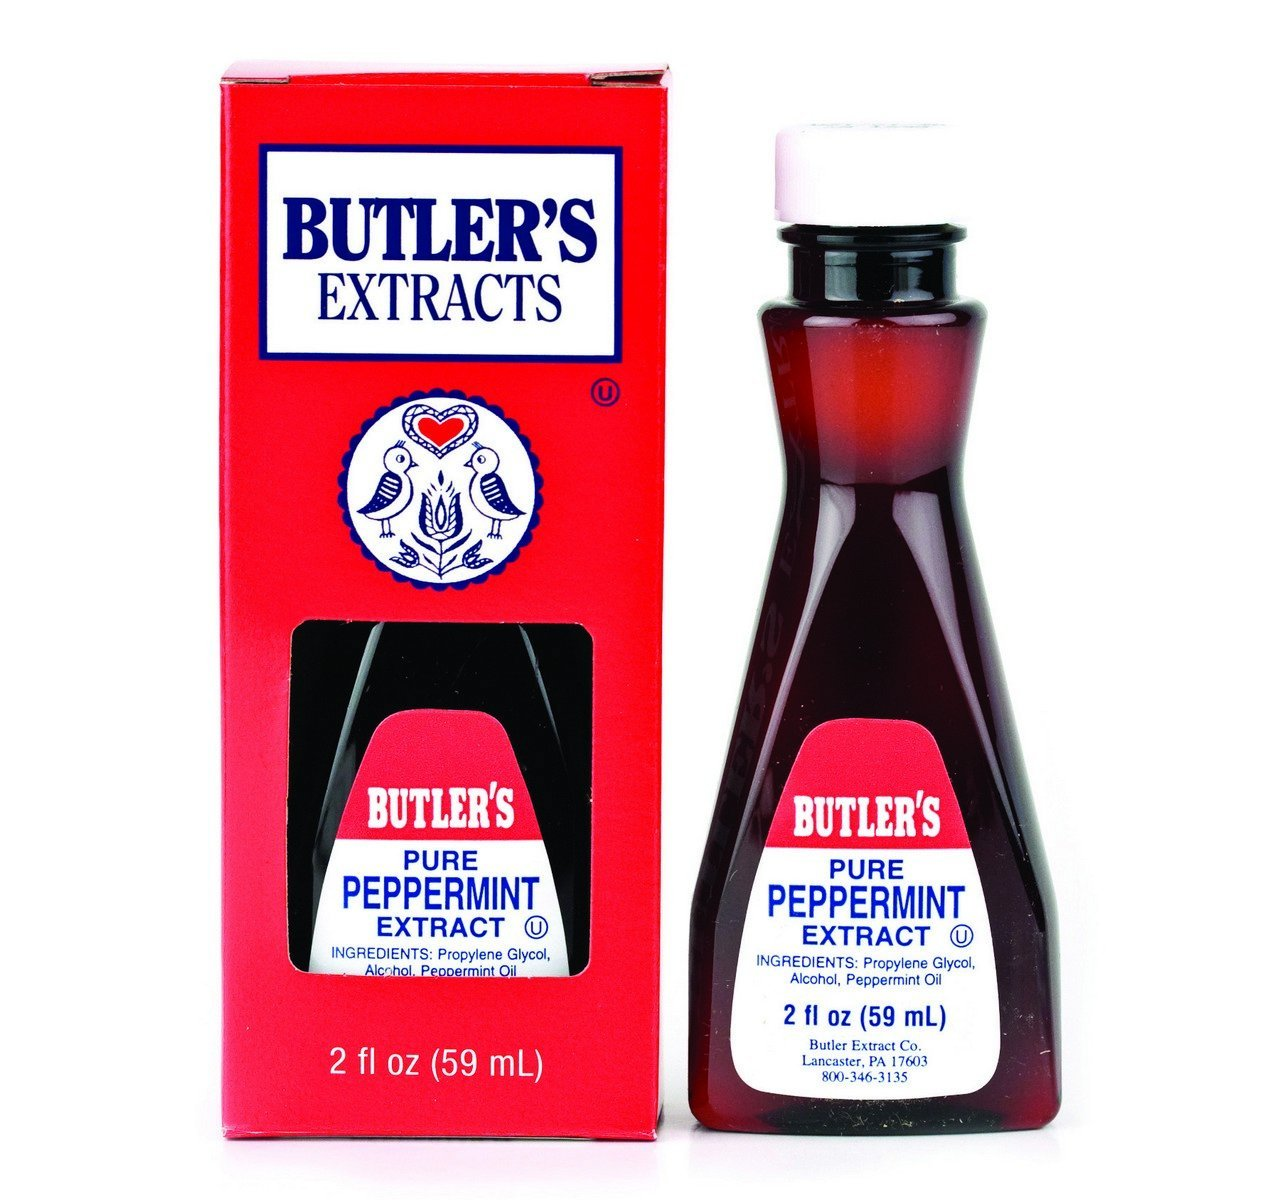 Butler's Pure Peppermint Extract, 2 Oz. Bottle (Pack of 2)